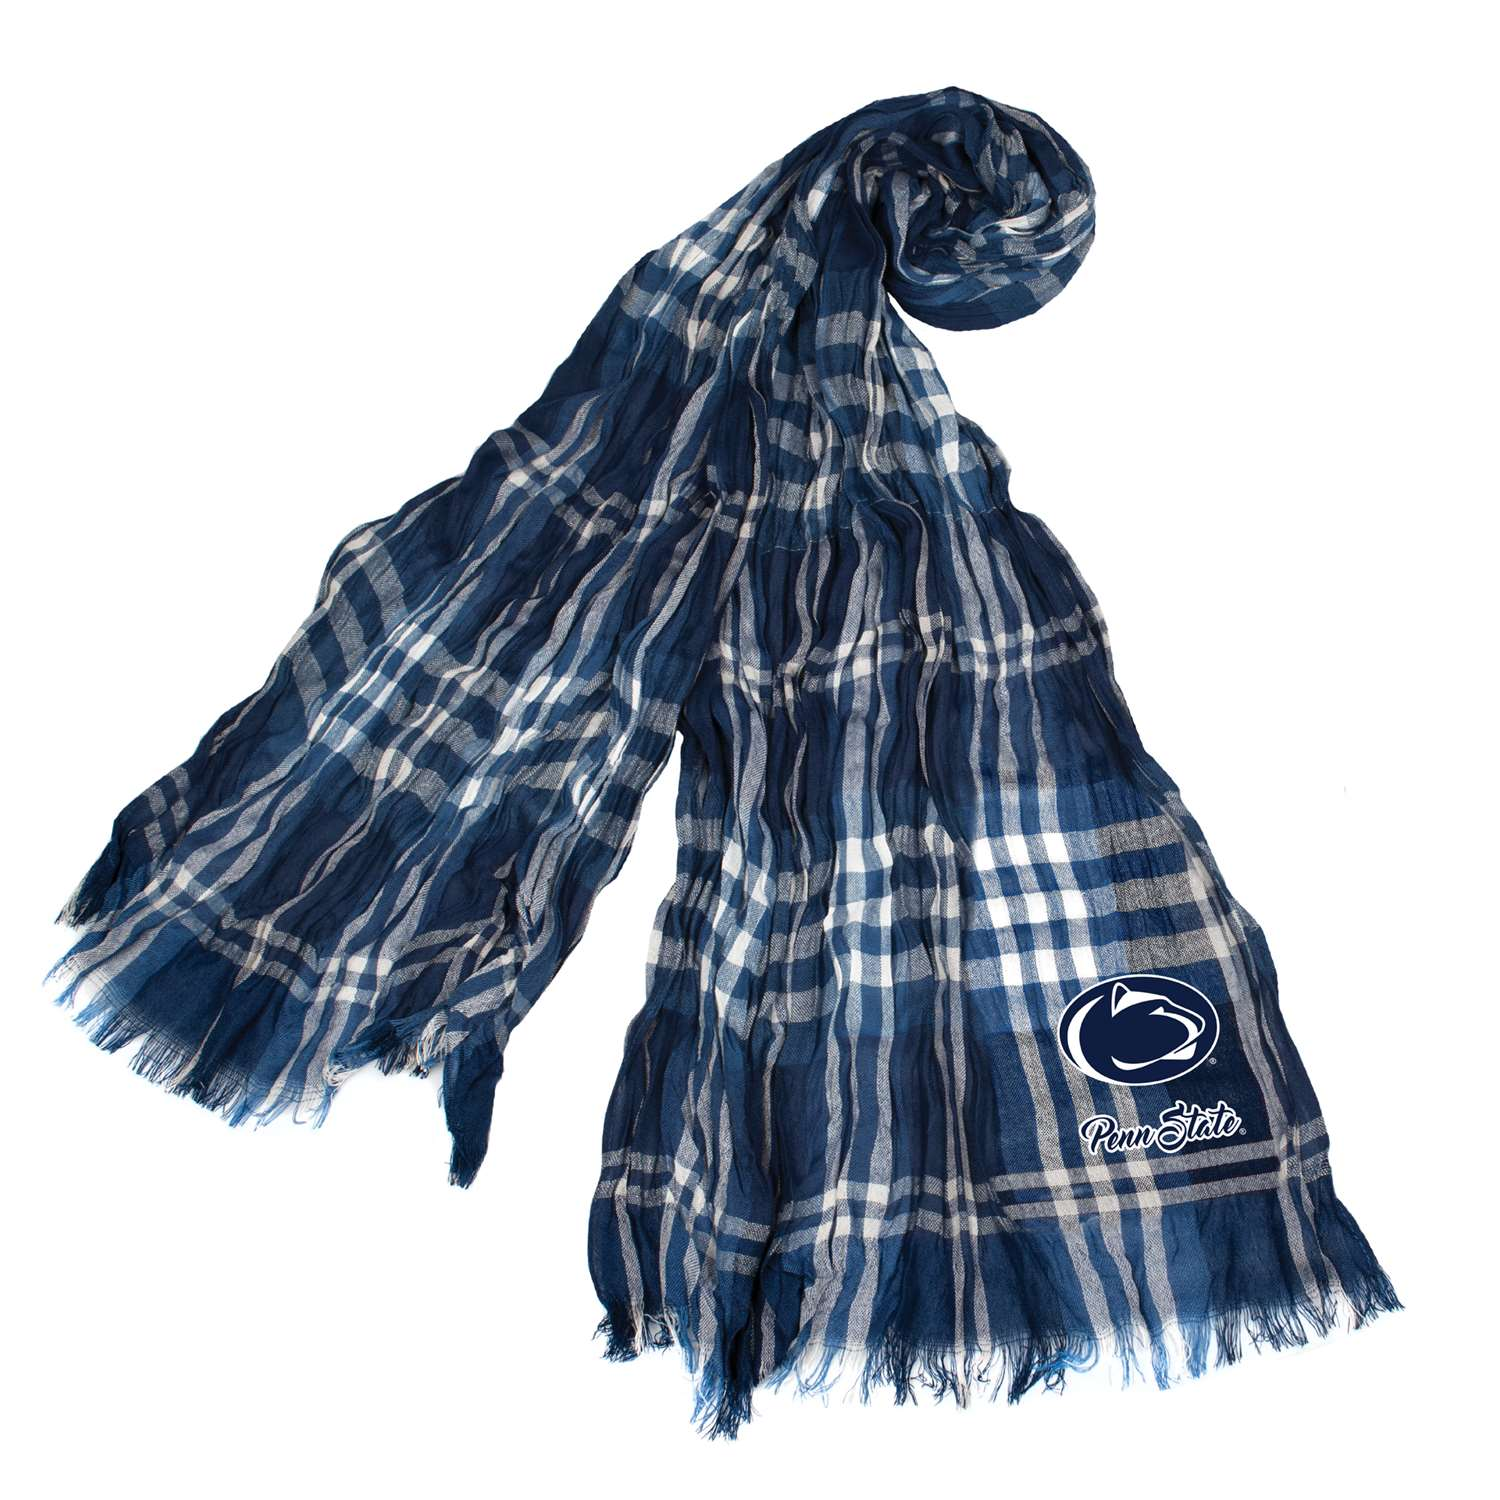 Pennsylvania State University Crinkle Scarf Plaid - 100658-psu-nvgry - Ncaa College California University Of Pennsylvania Cup Vulcans Scarves 100658-PSU-NVGRY